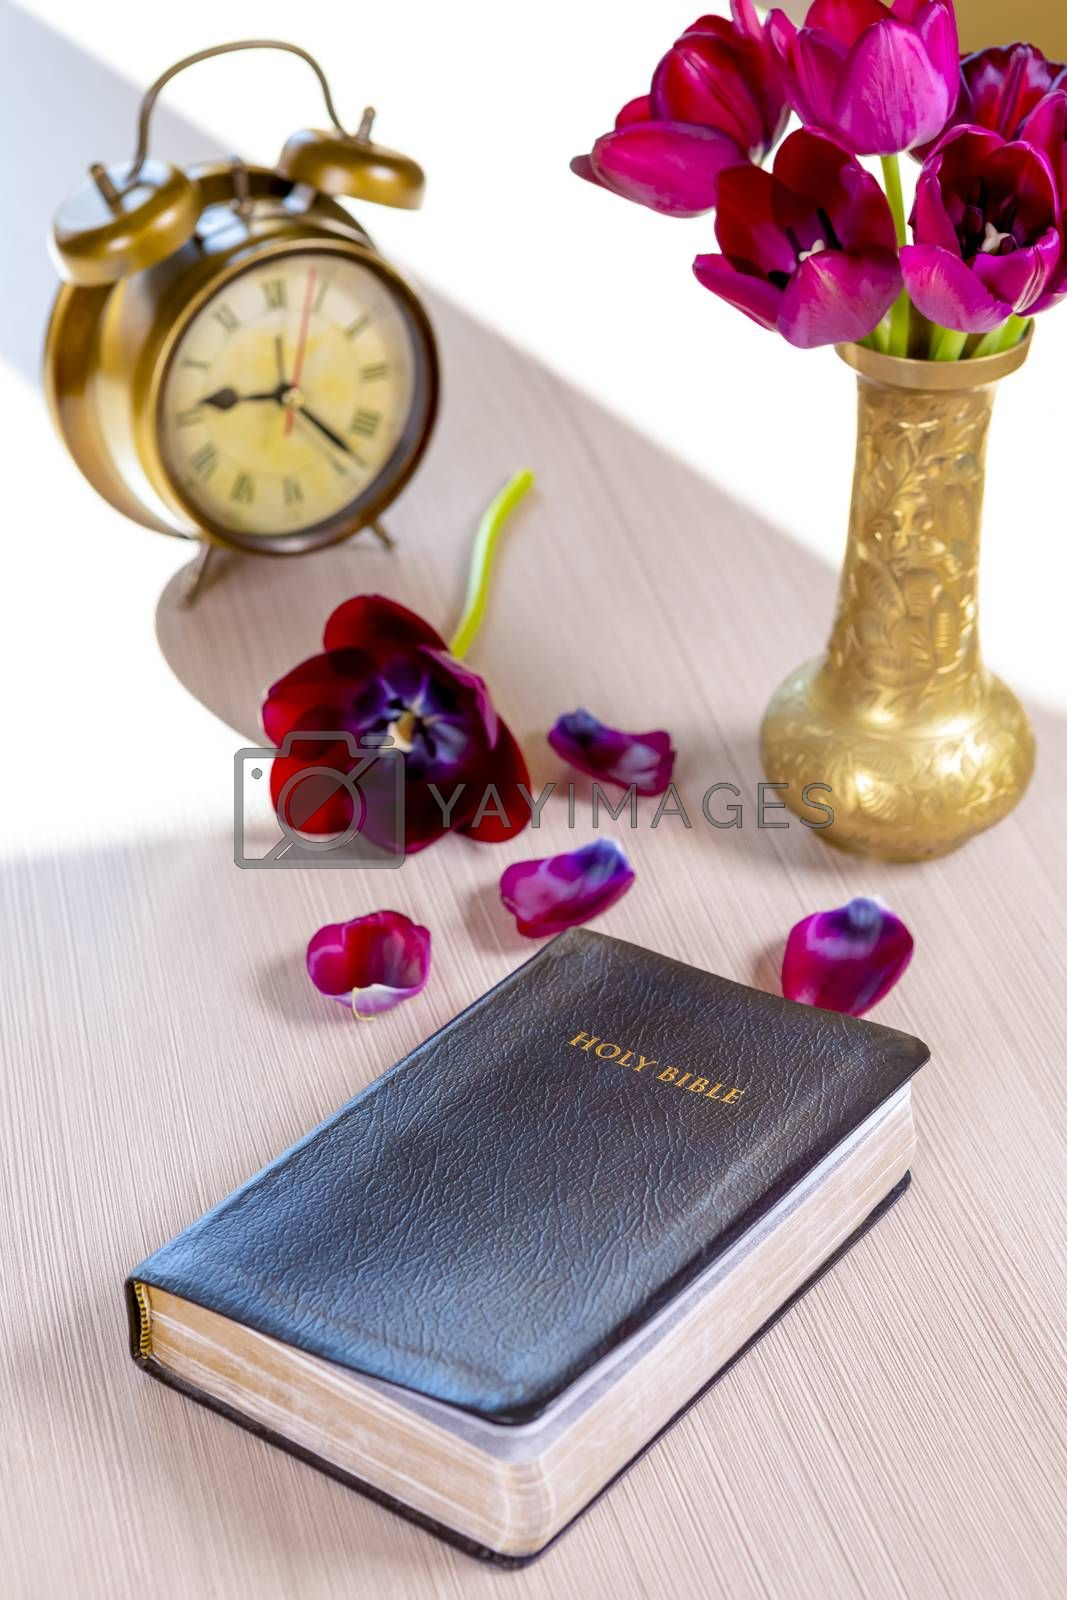 Holy Bible and old gold alarm clock with flowers on wooden table background. Time for studying, reading and spirituality concept.